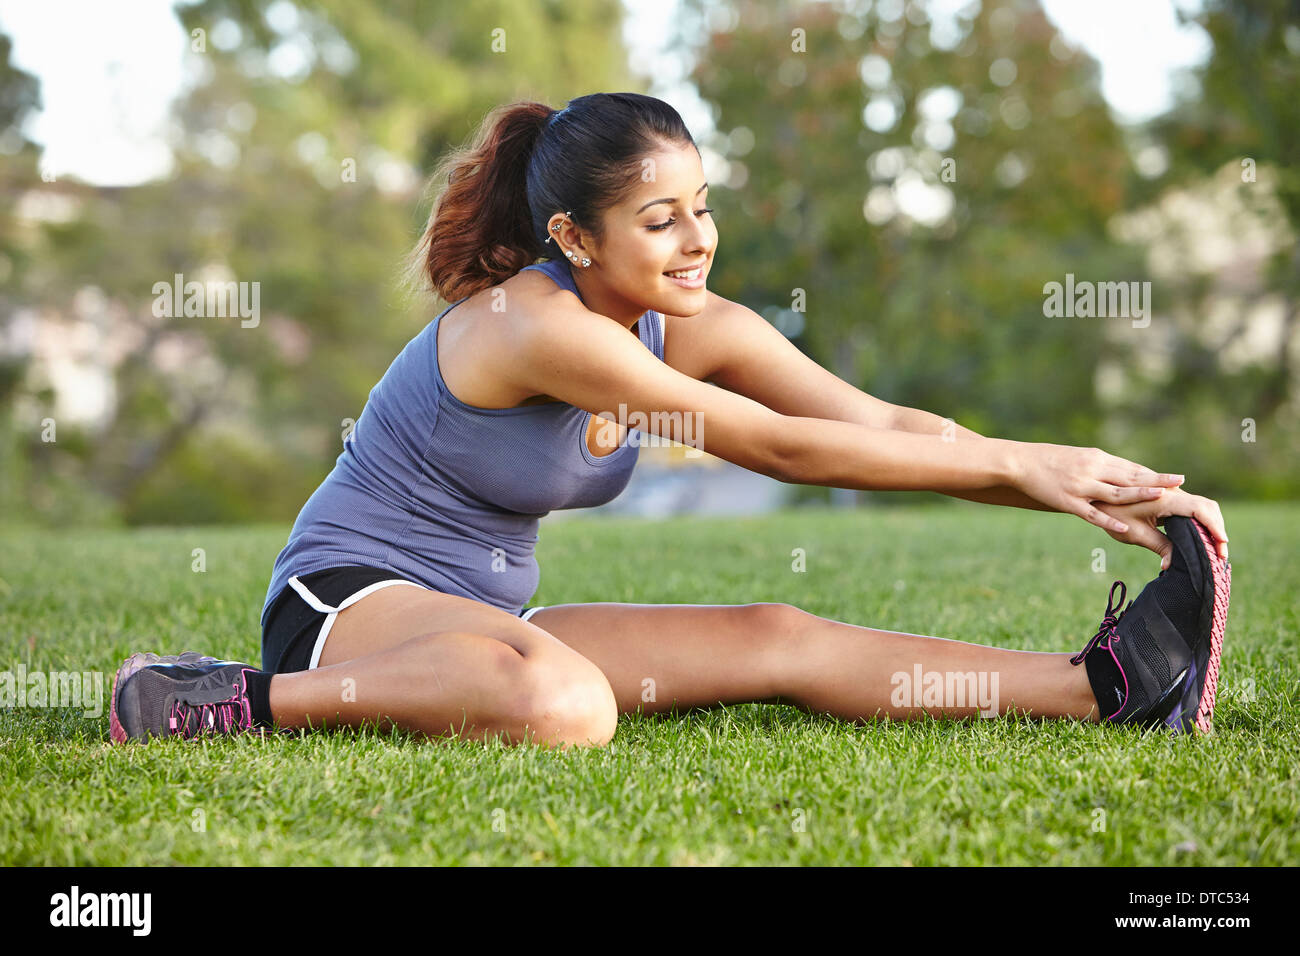 Young woman doing stretching exercise - Stock Image